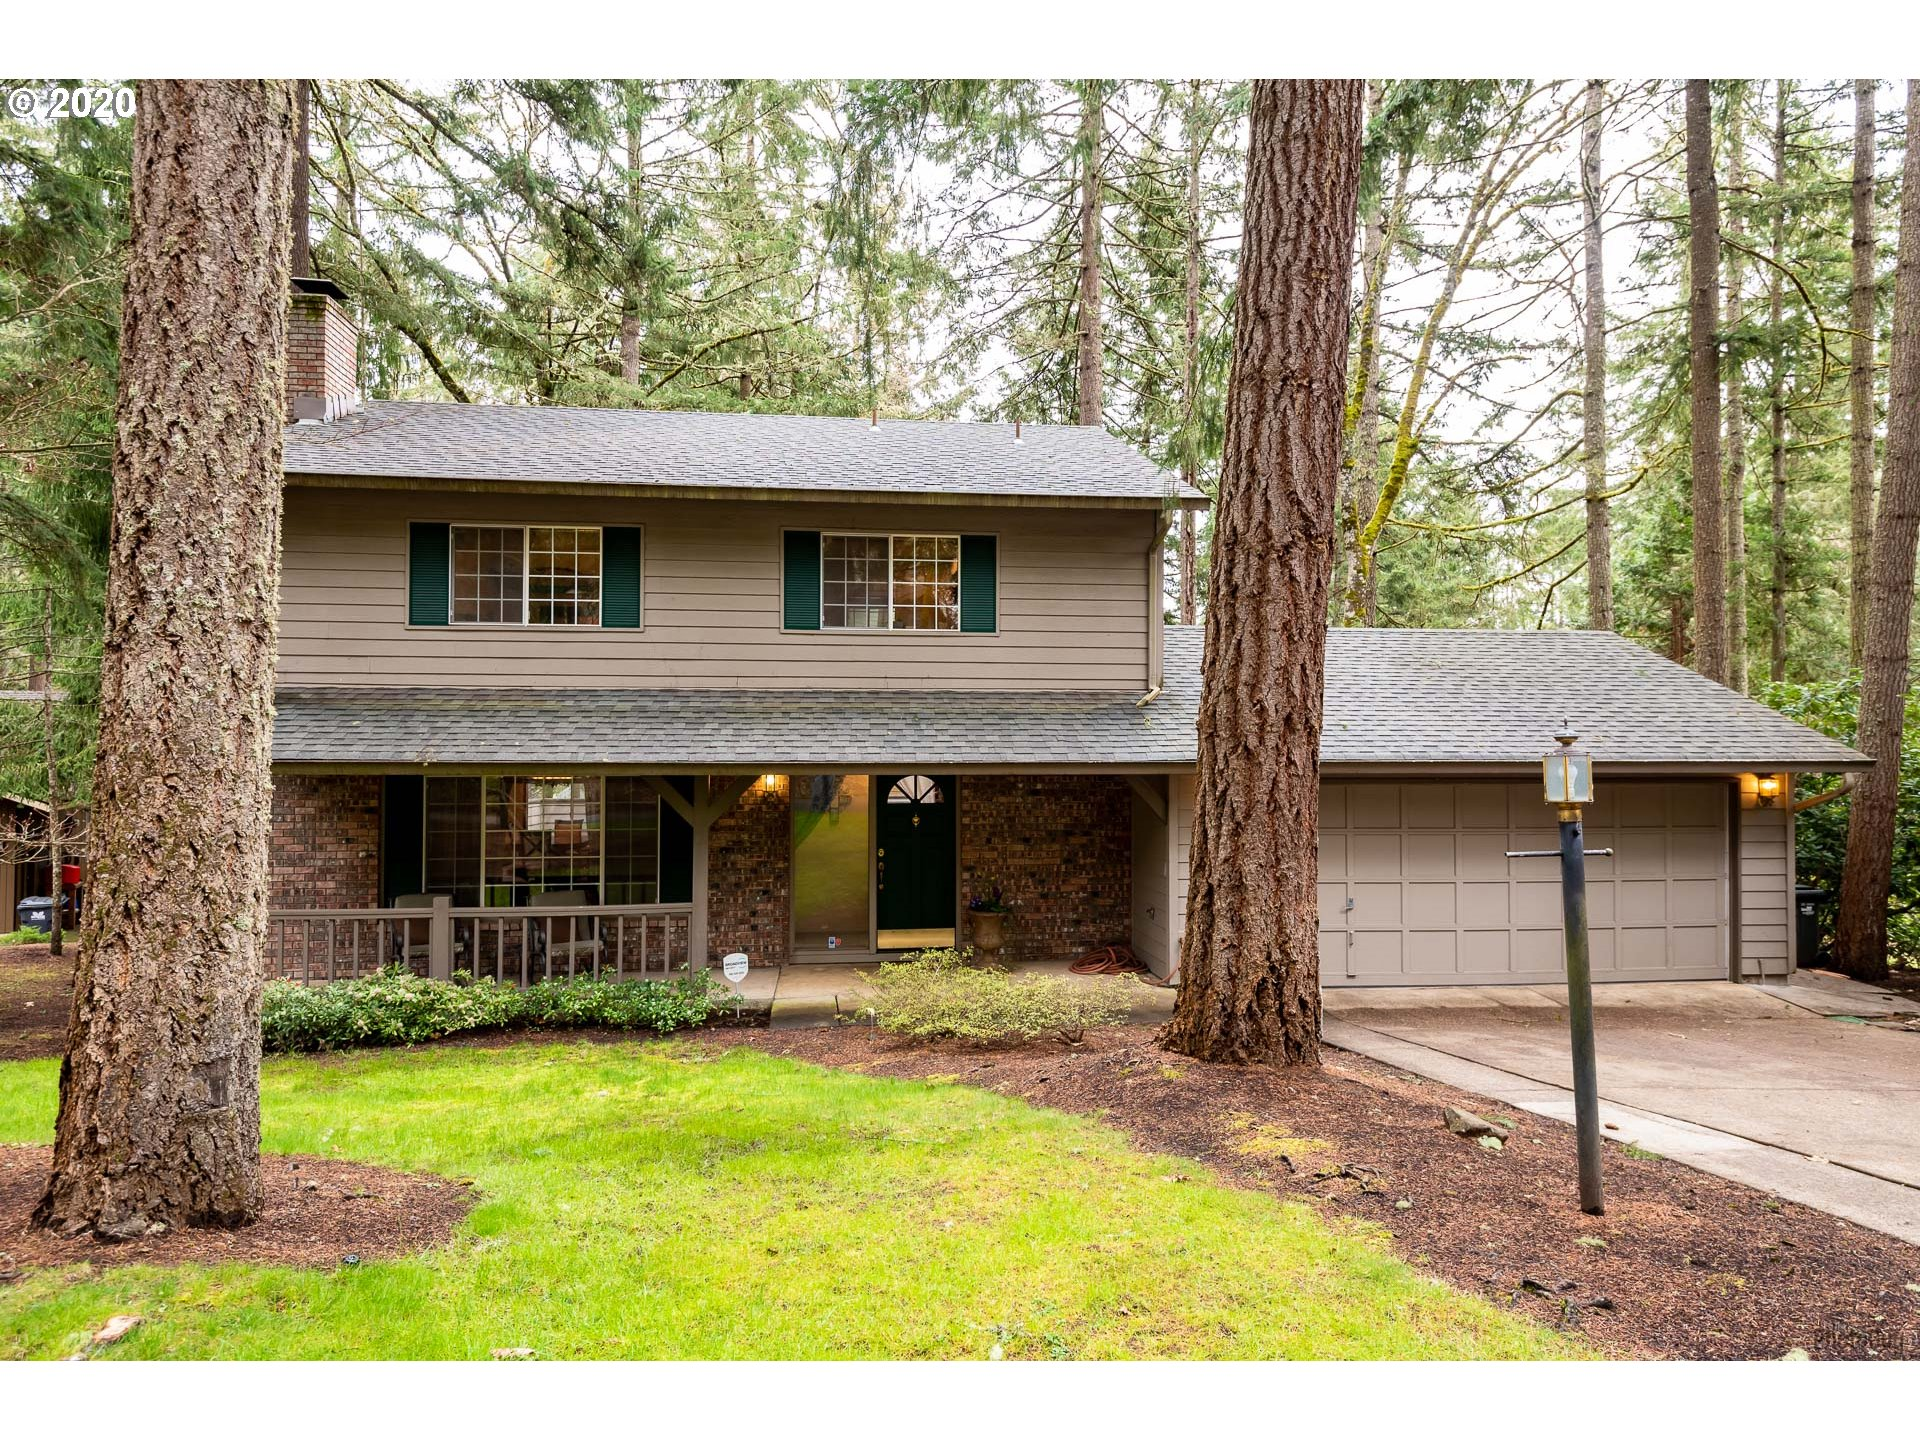 3453 TIMBERLINE DR, Eugene OR 97405